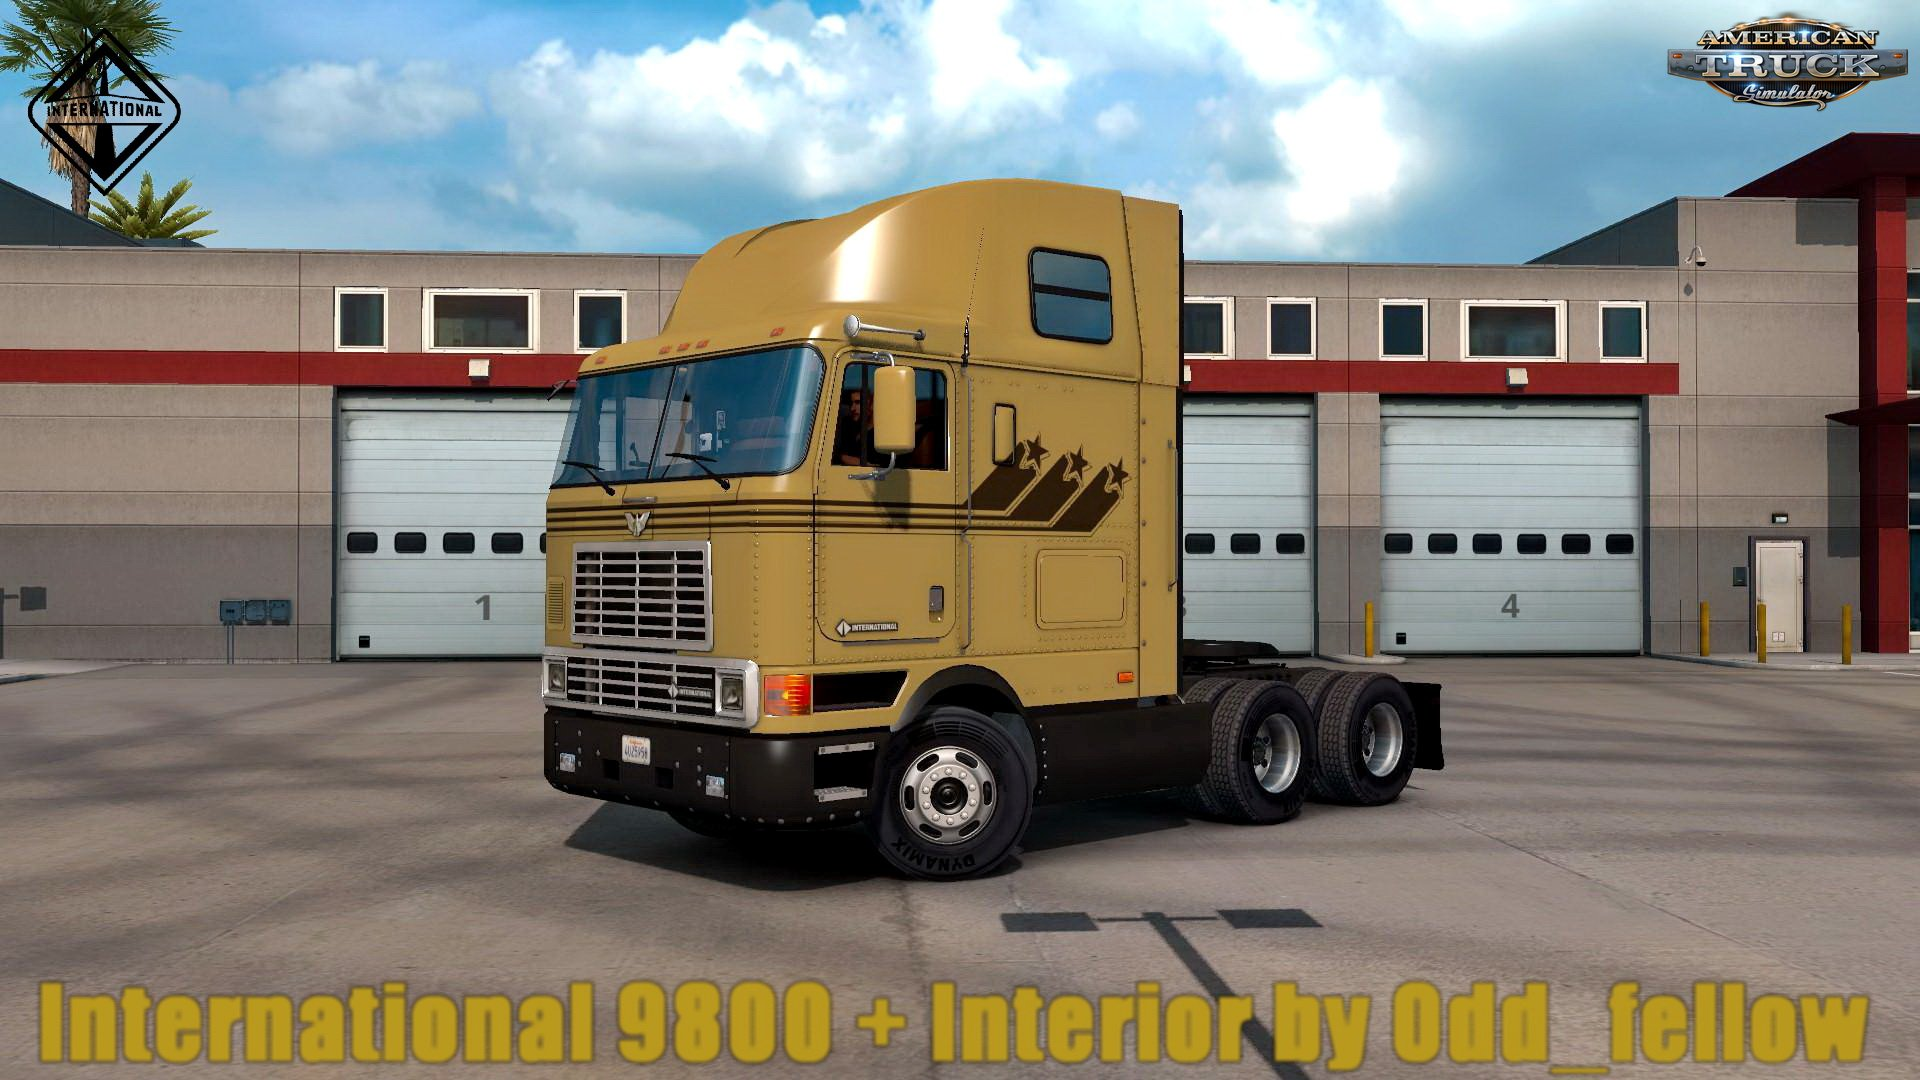 International 9800 + Interior v2.0 by Odd_fellow (1.30.x)